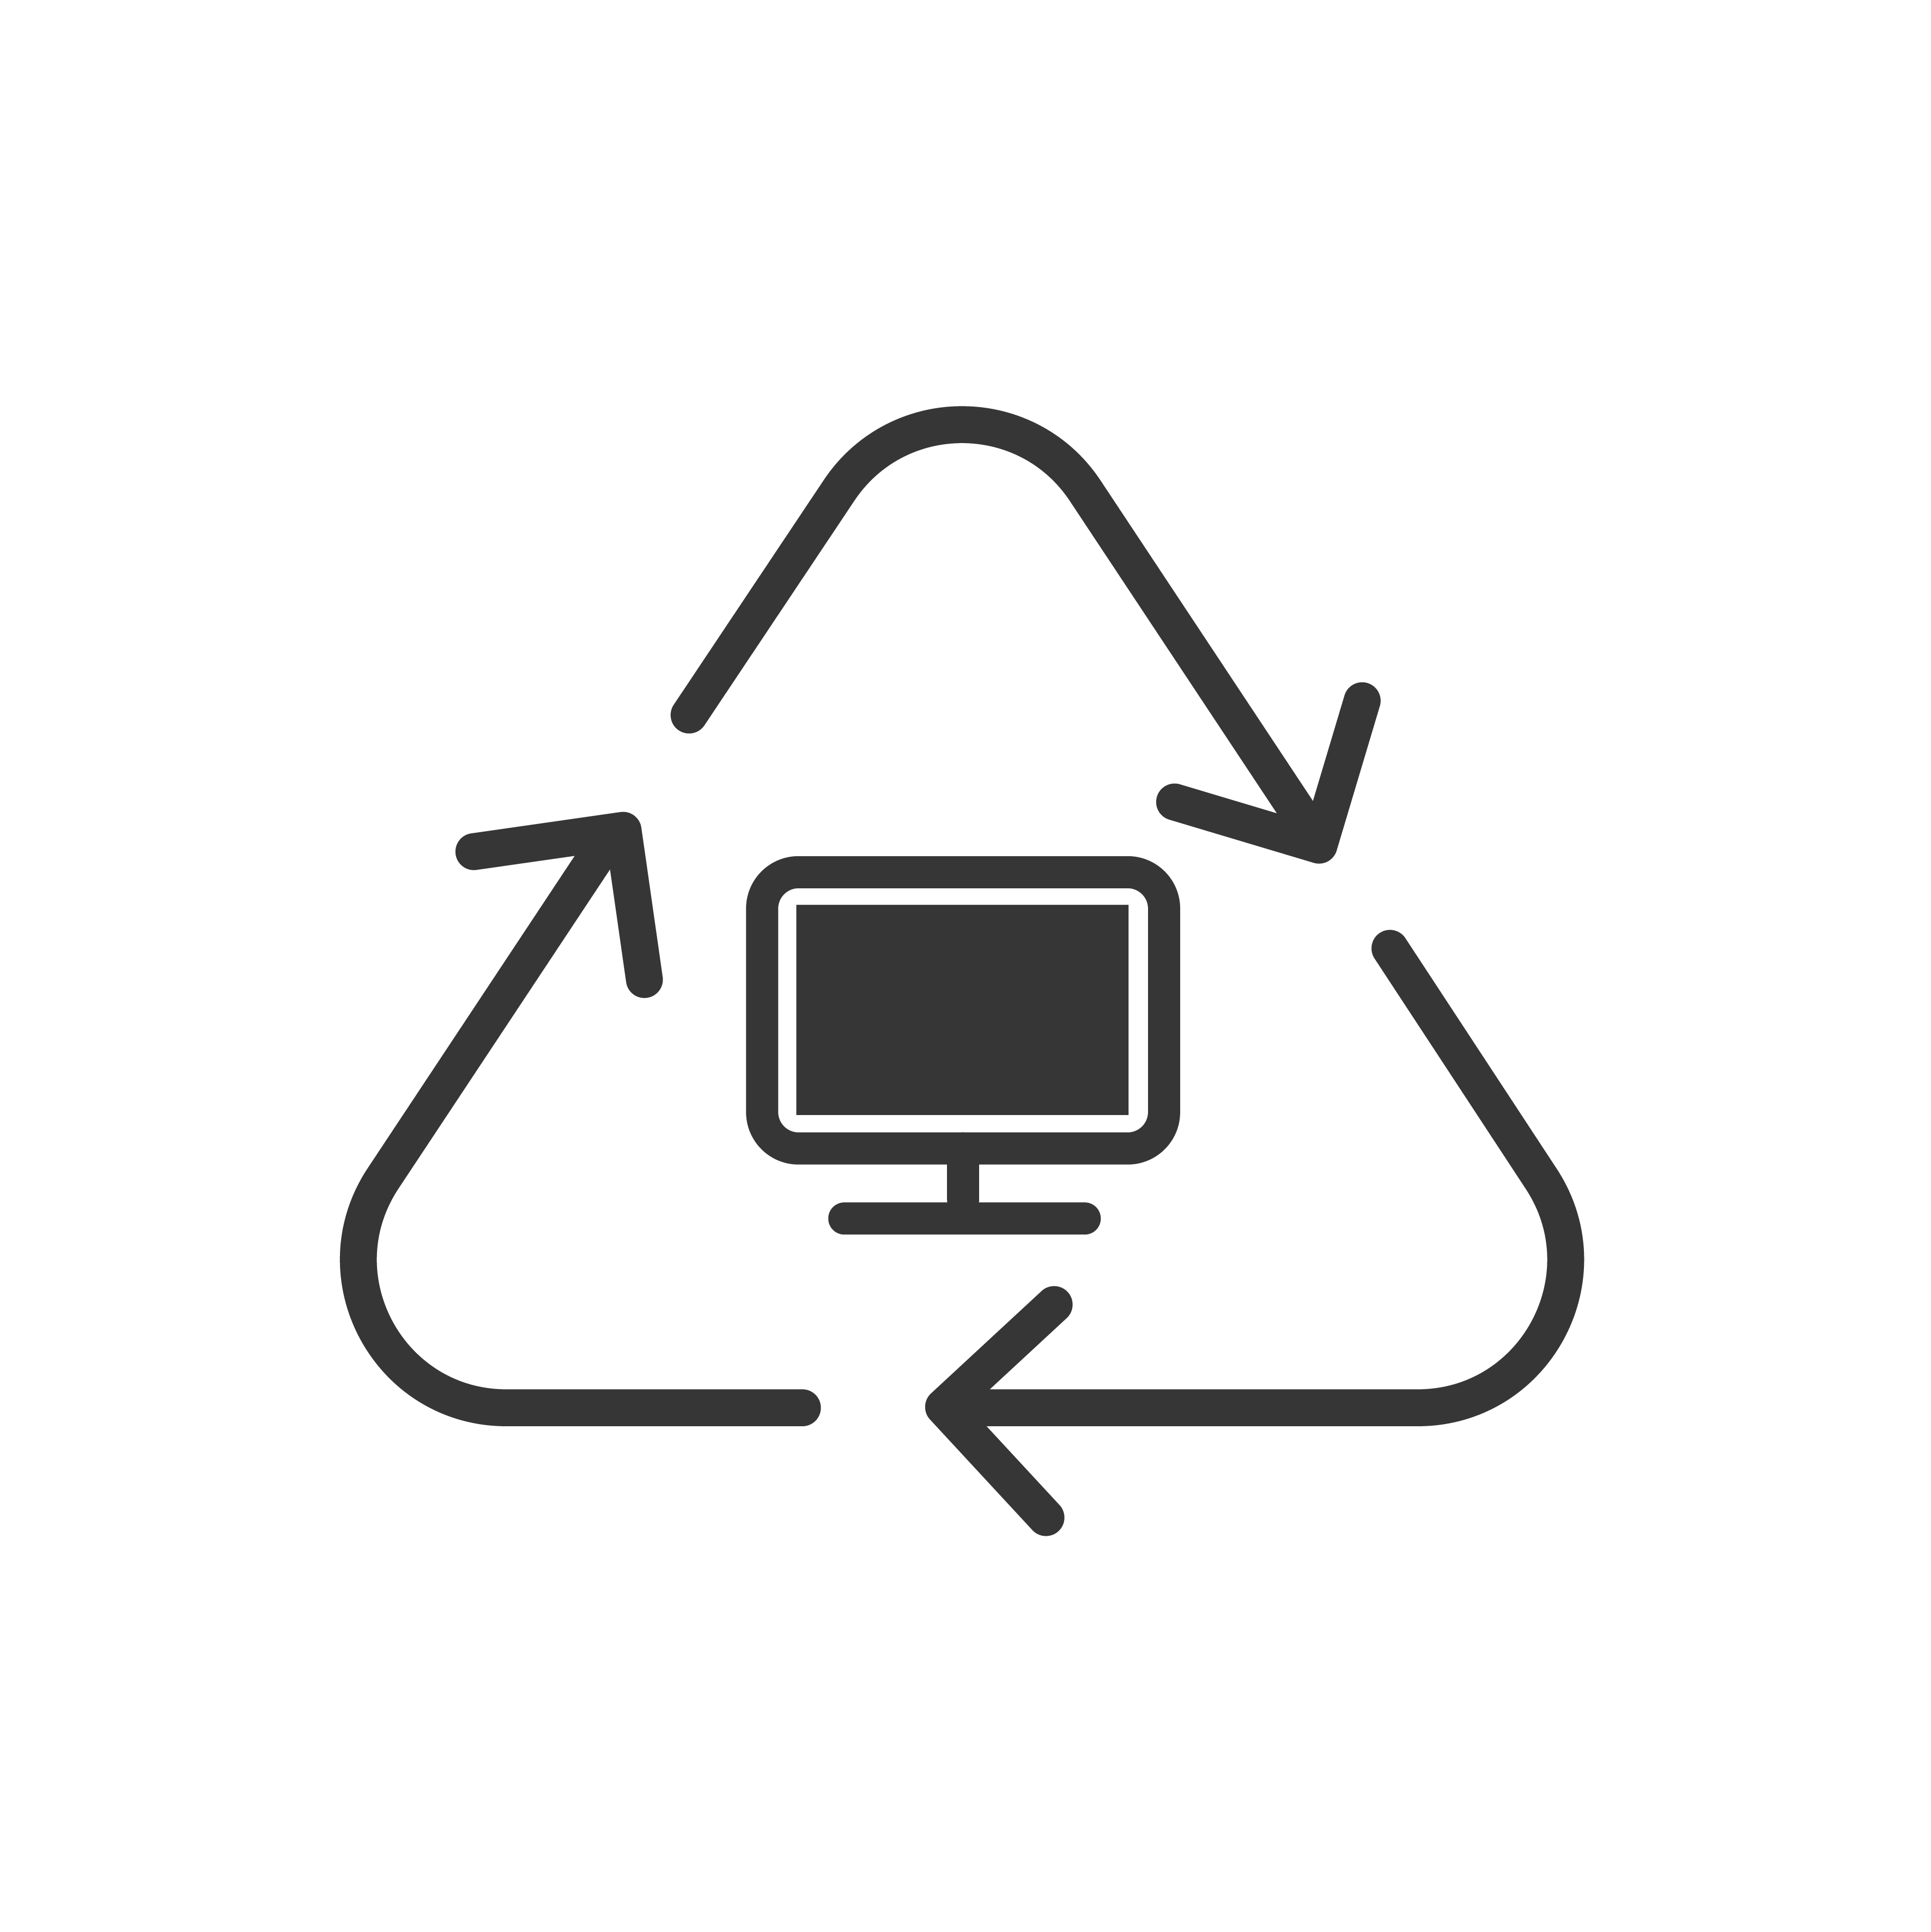 Recycling and Asset Disposal Icon